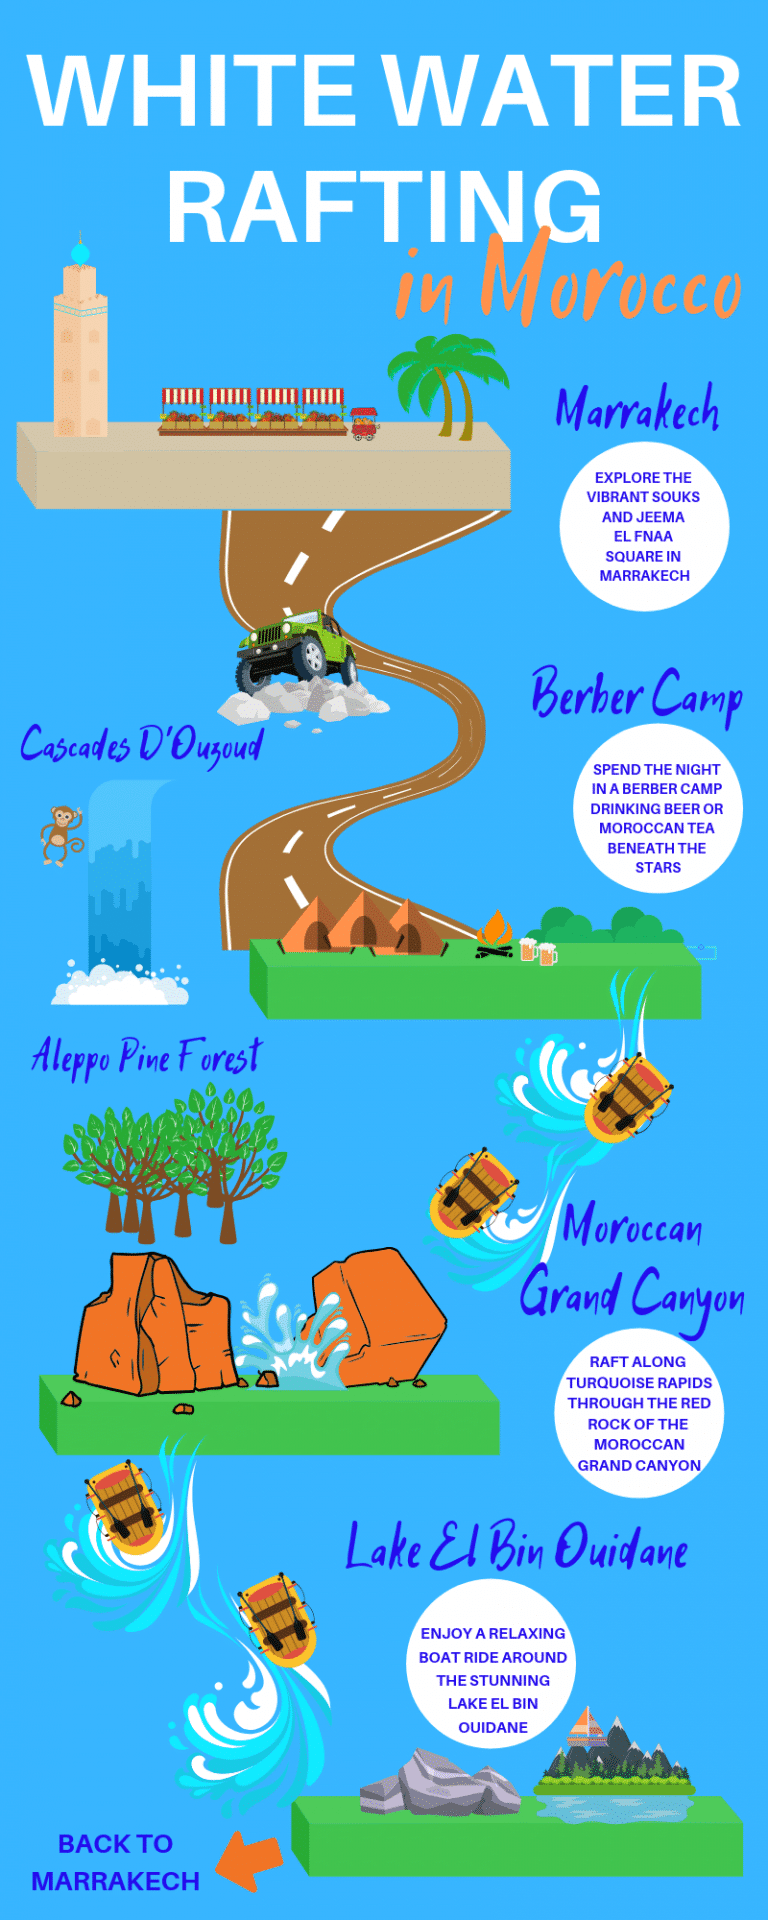 White water rafting in Morocco infographic